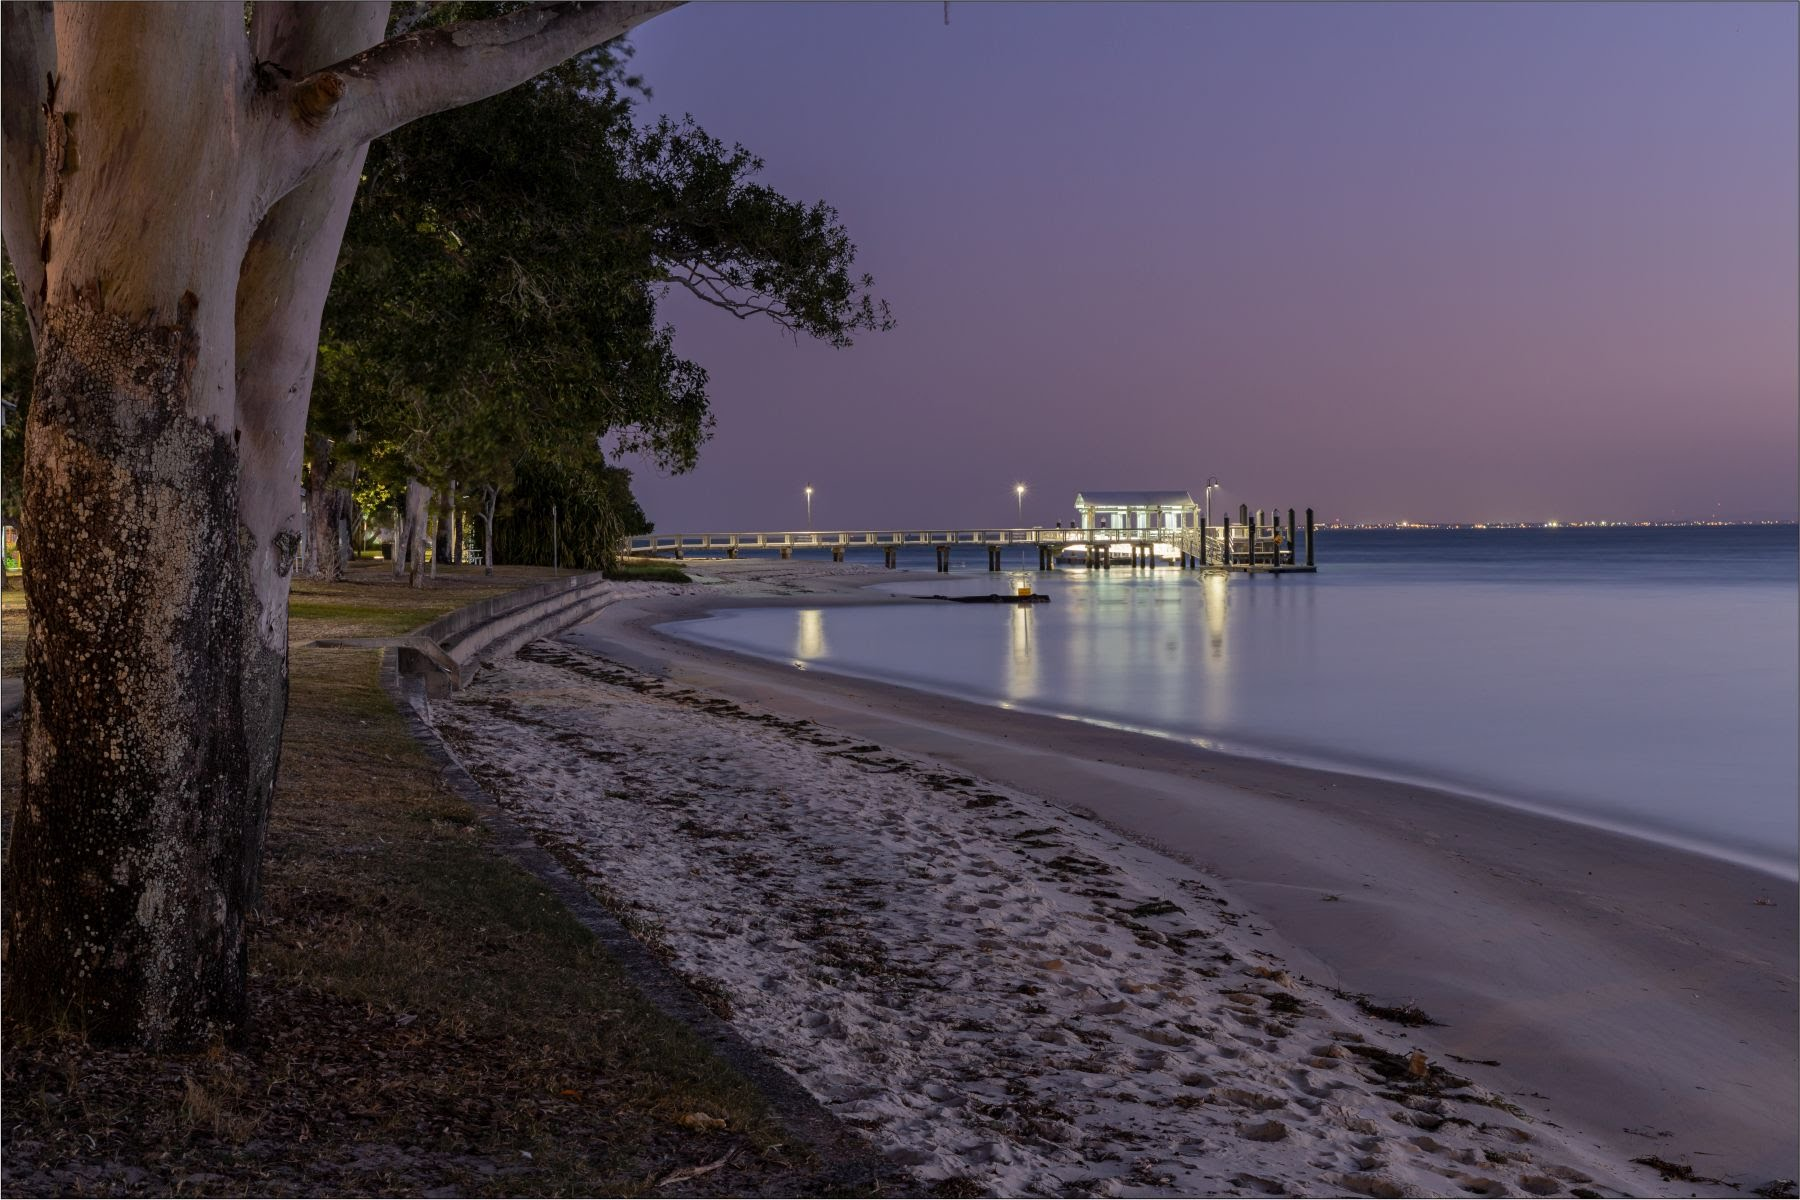 image at dusk of water and jetty from the side on shore